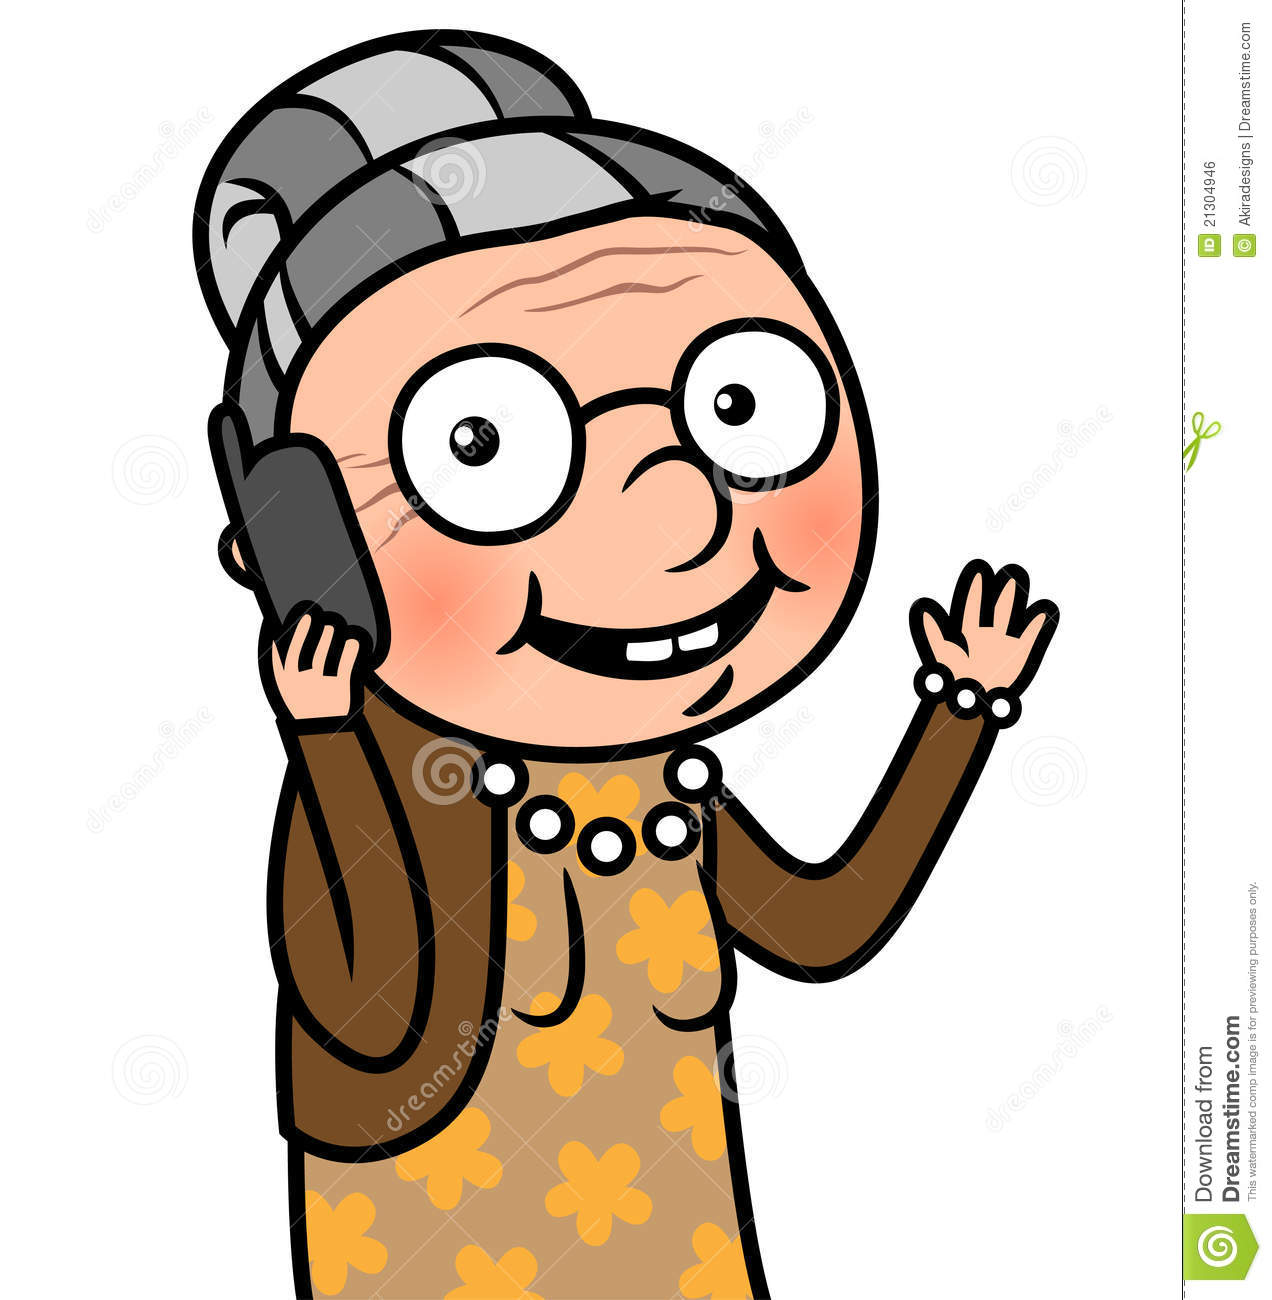 Old Woman Clip Art - Blogsbeta